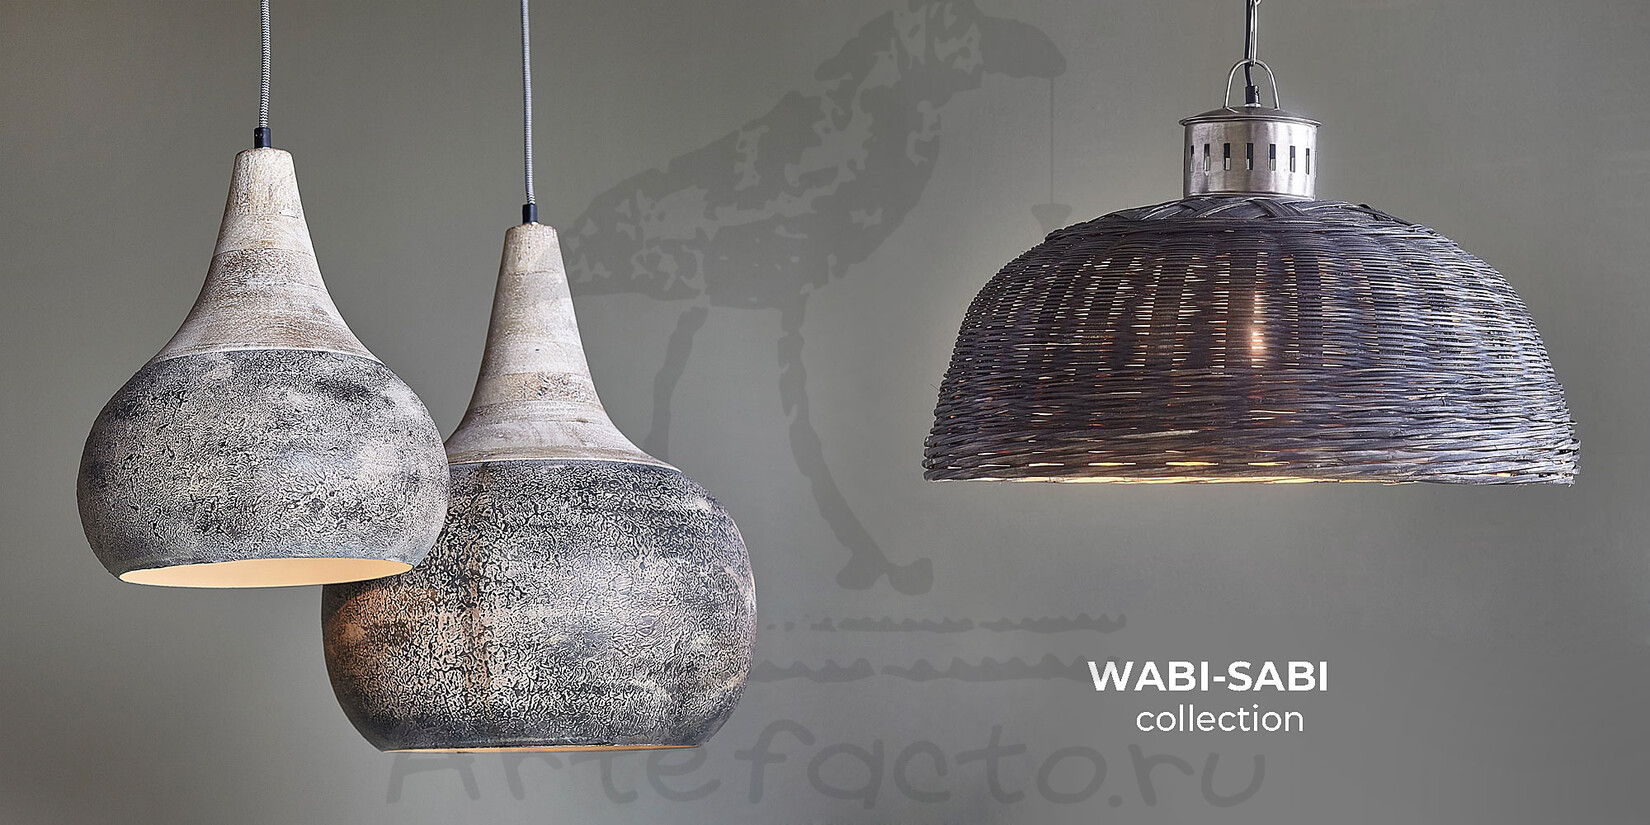 Wabi-Sabi collection